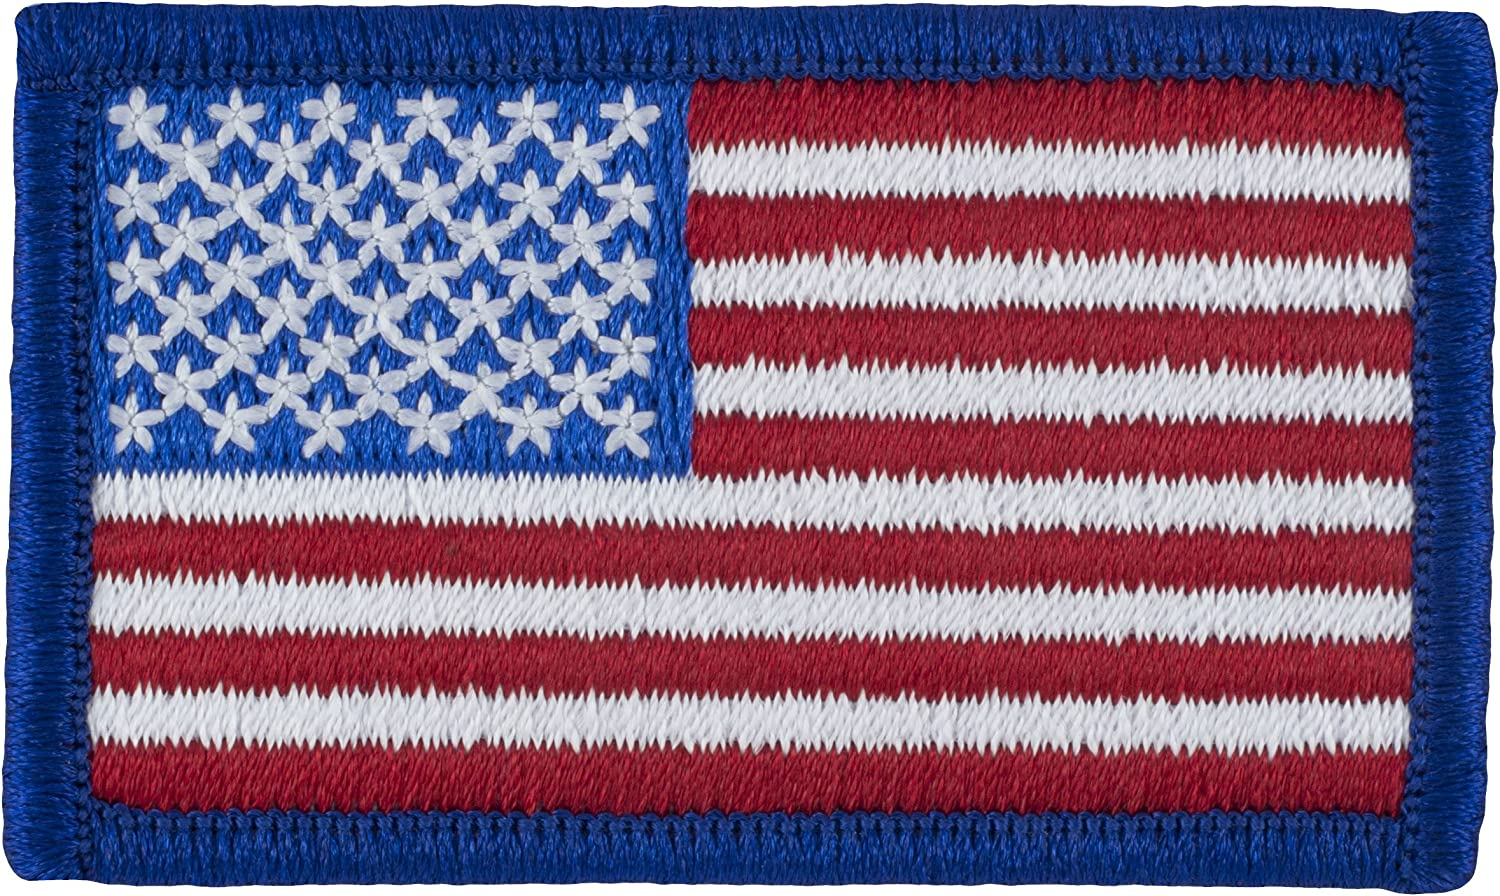 Embroidered USA Sew on Glue on BADGE UNITED STATES Stars and Stripes Flag Patch